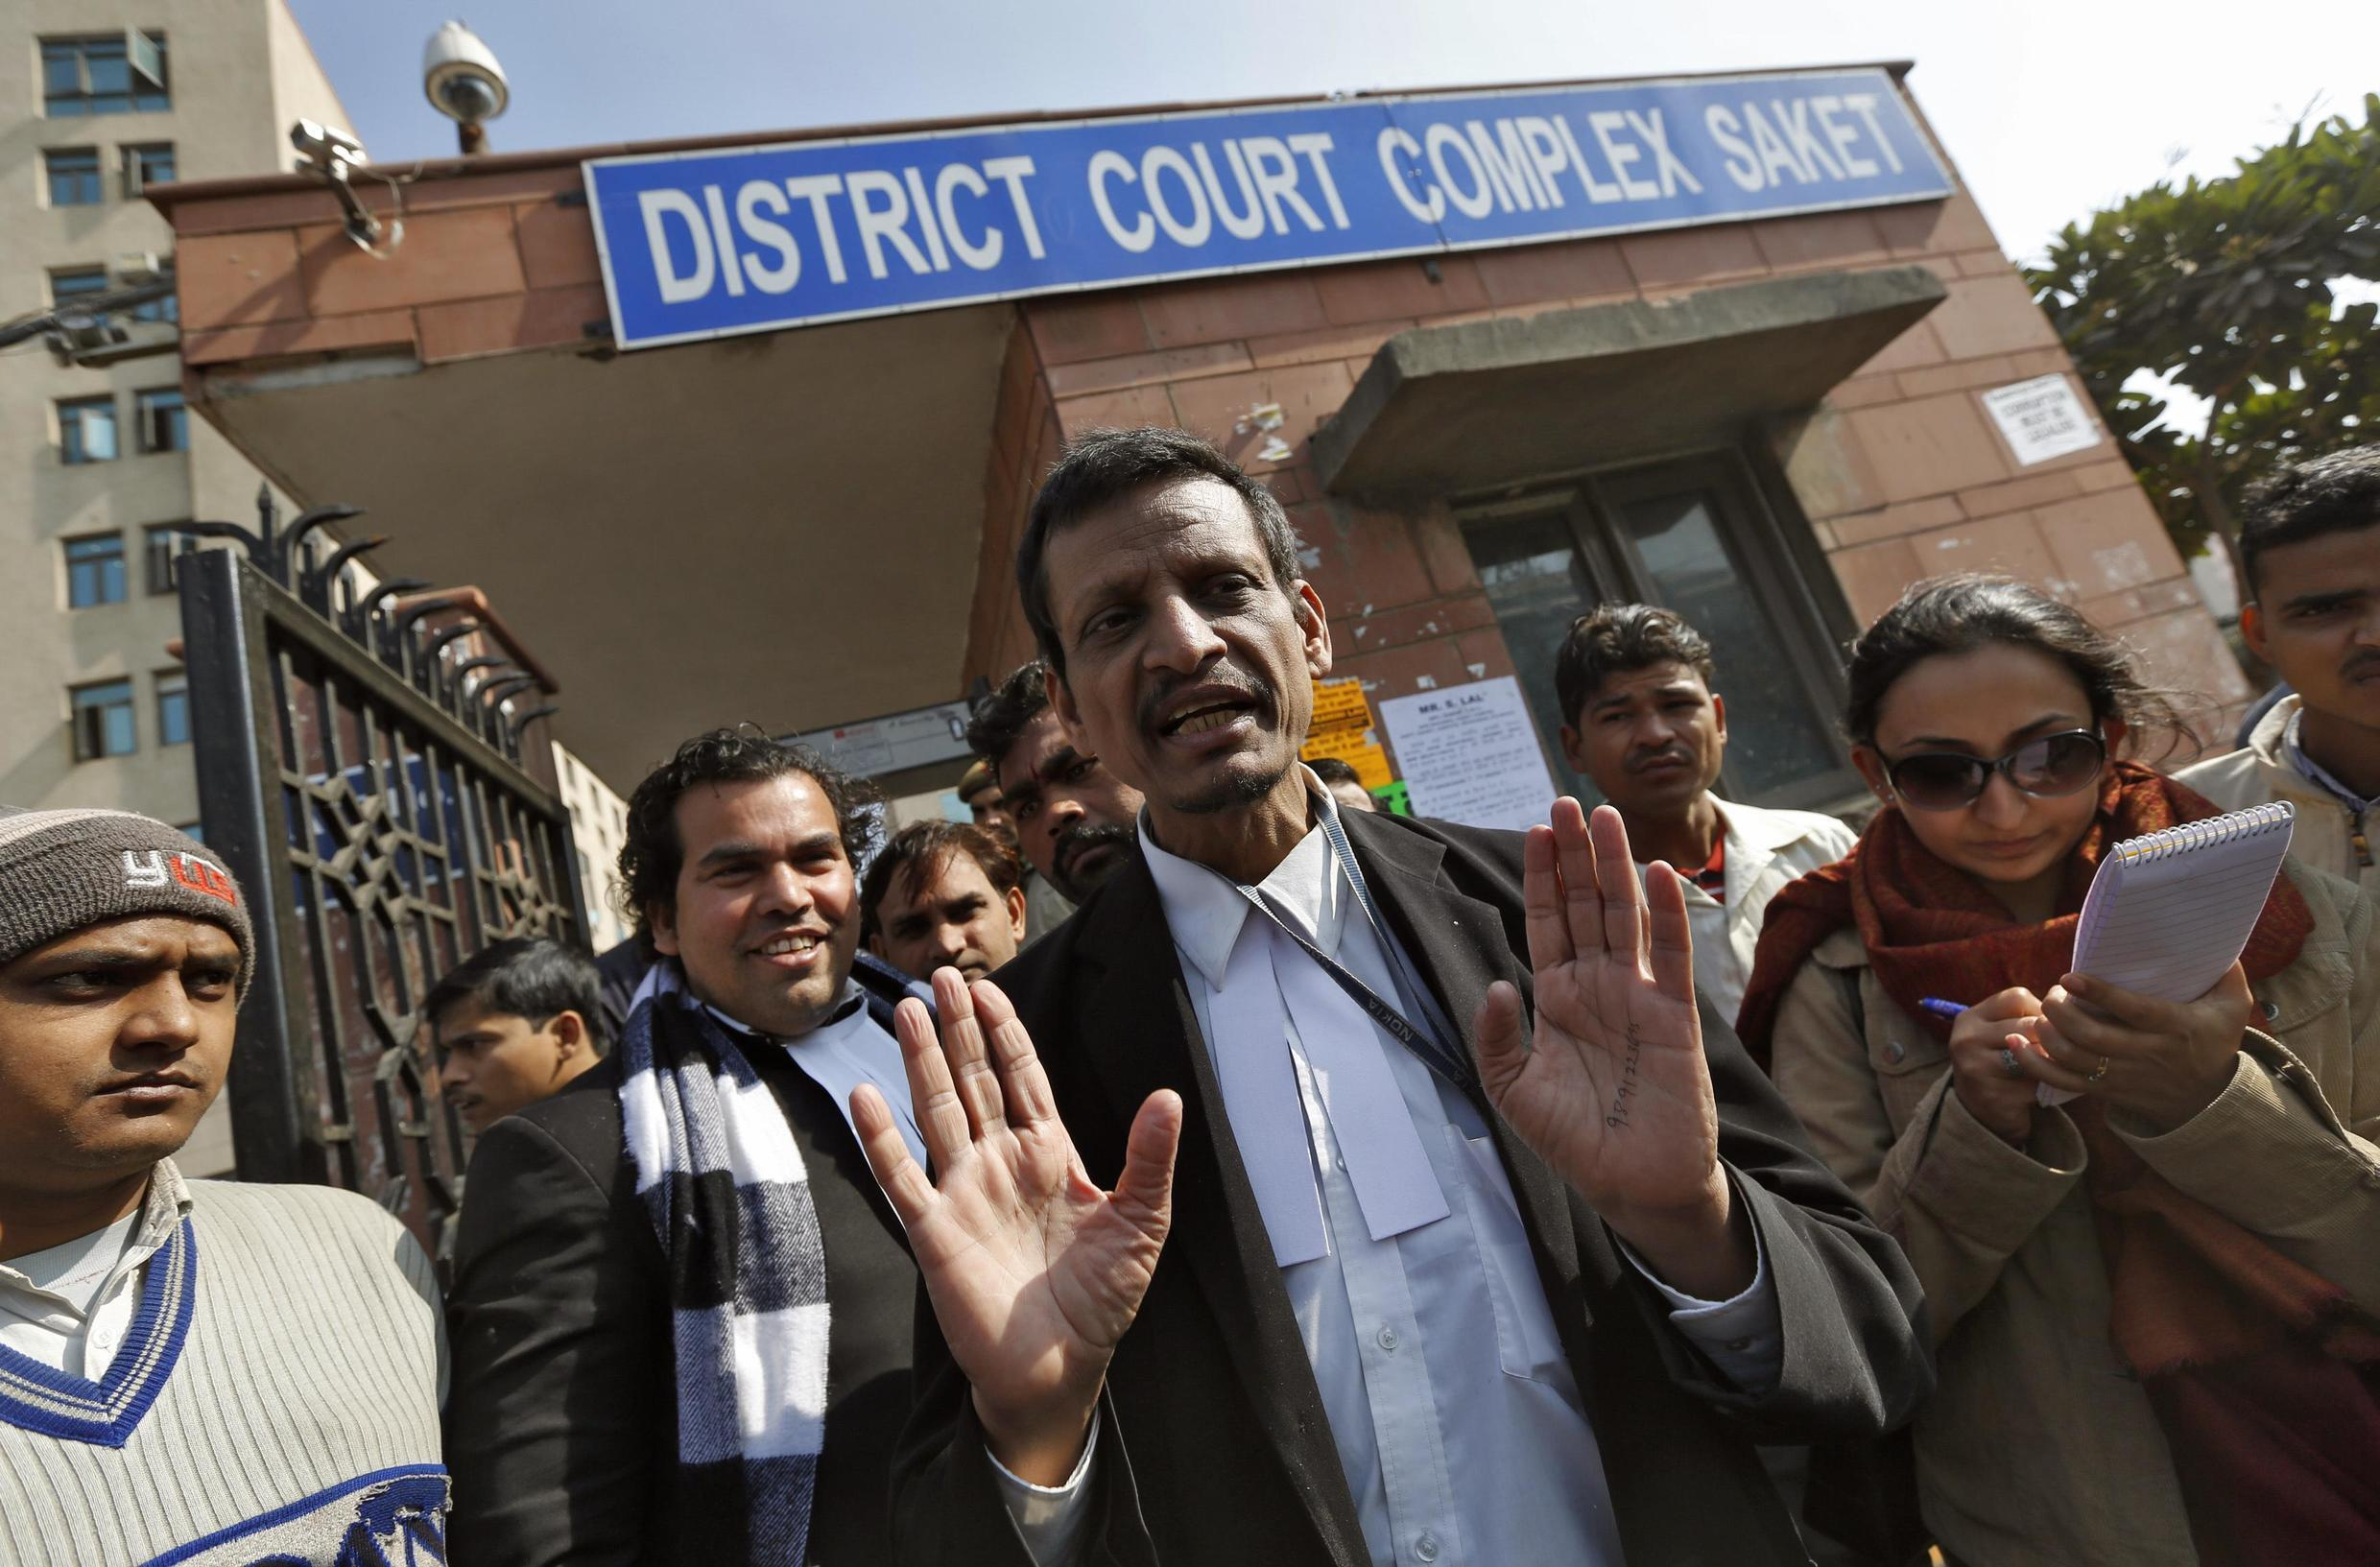 Manohar Lal Sharma (C), lawyer of one of the accused Mukesh Singh, speaks with the media outside a district court in New Delhi